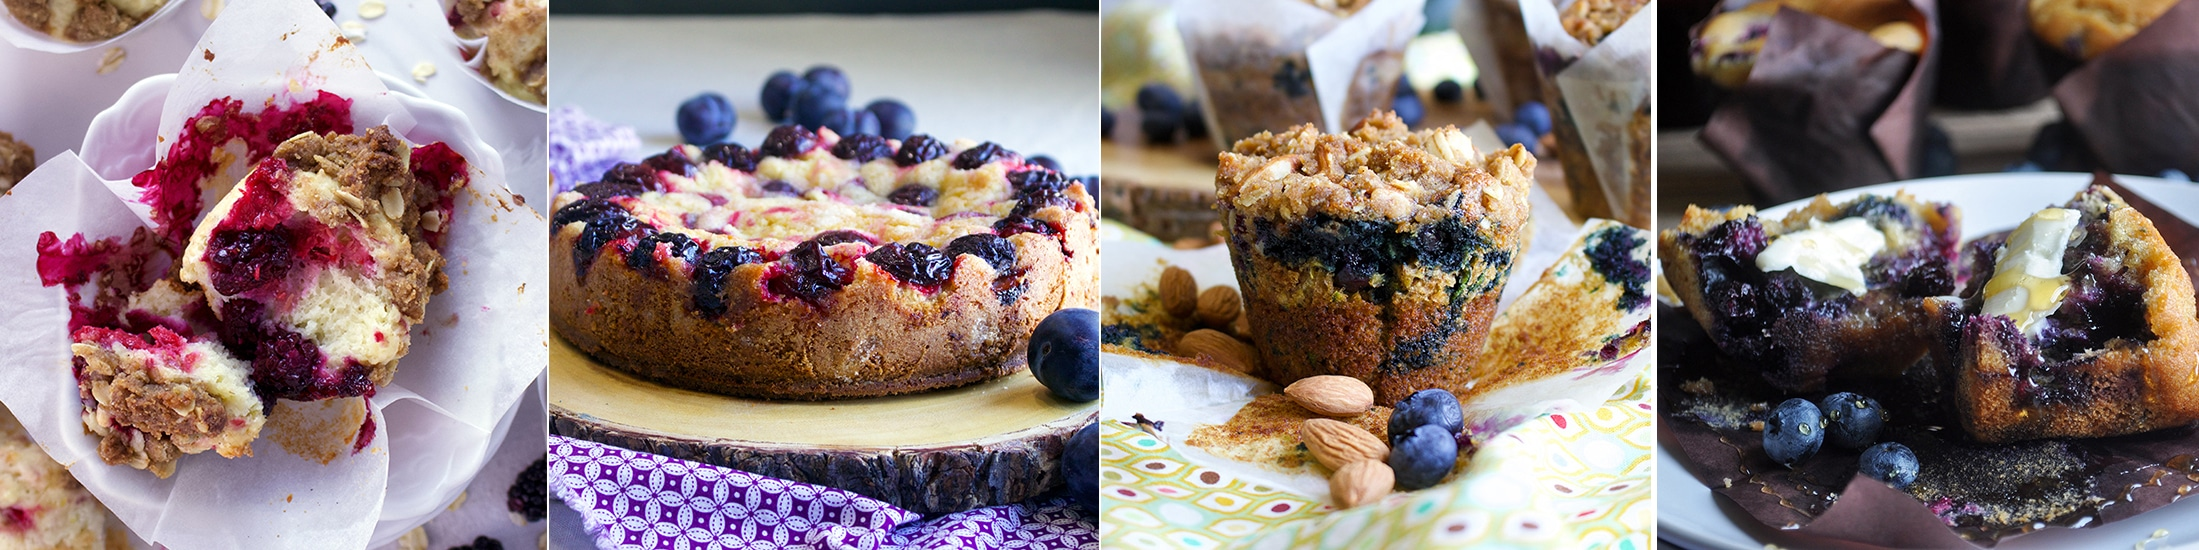 Breakfast Treats: Mixed Berry Muffins with Streusel, Almond Plum Cake, Zucchini Blueberry Muffins, Blueberry Corn Muffins